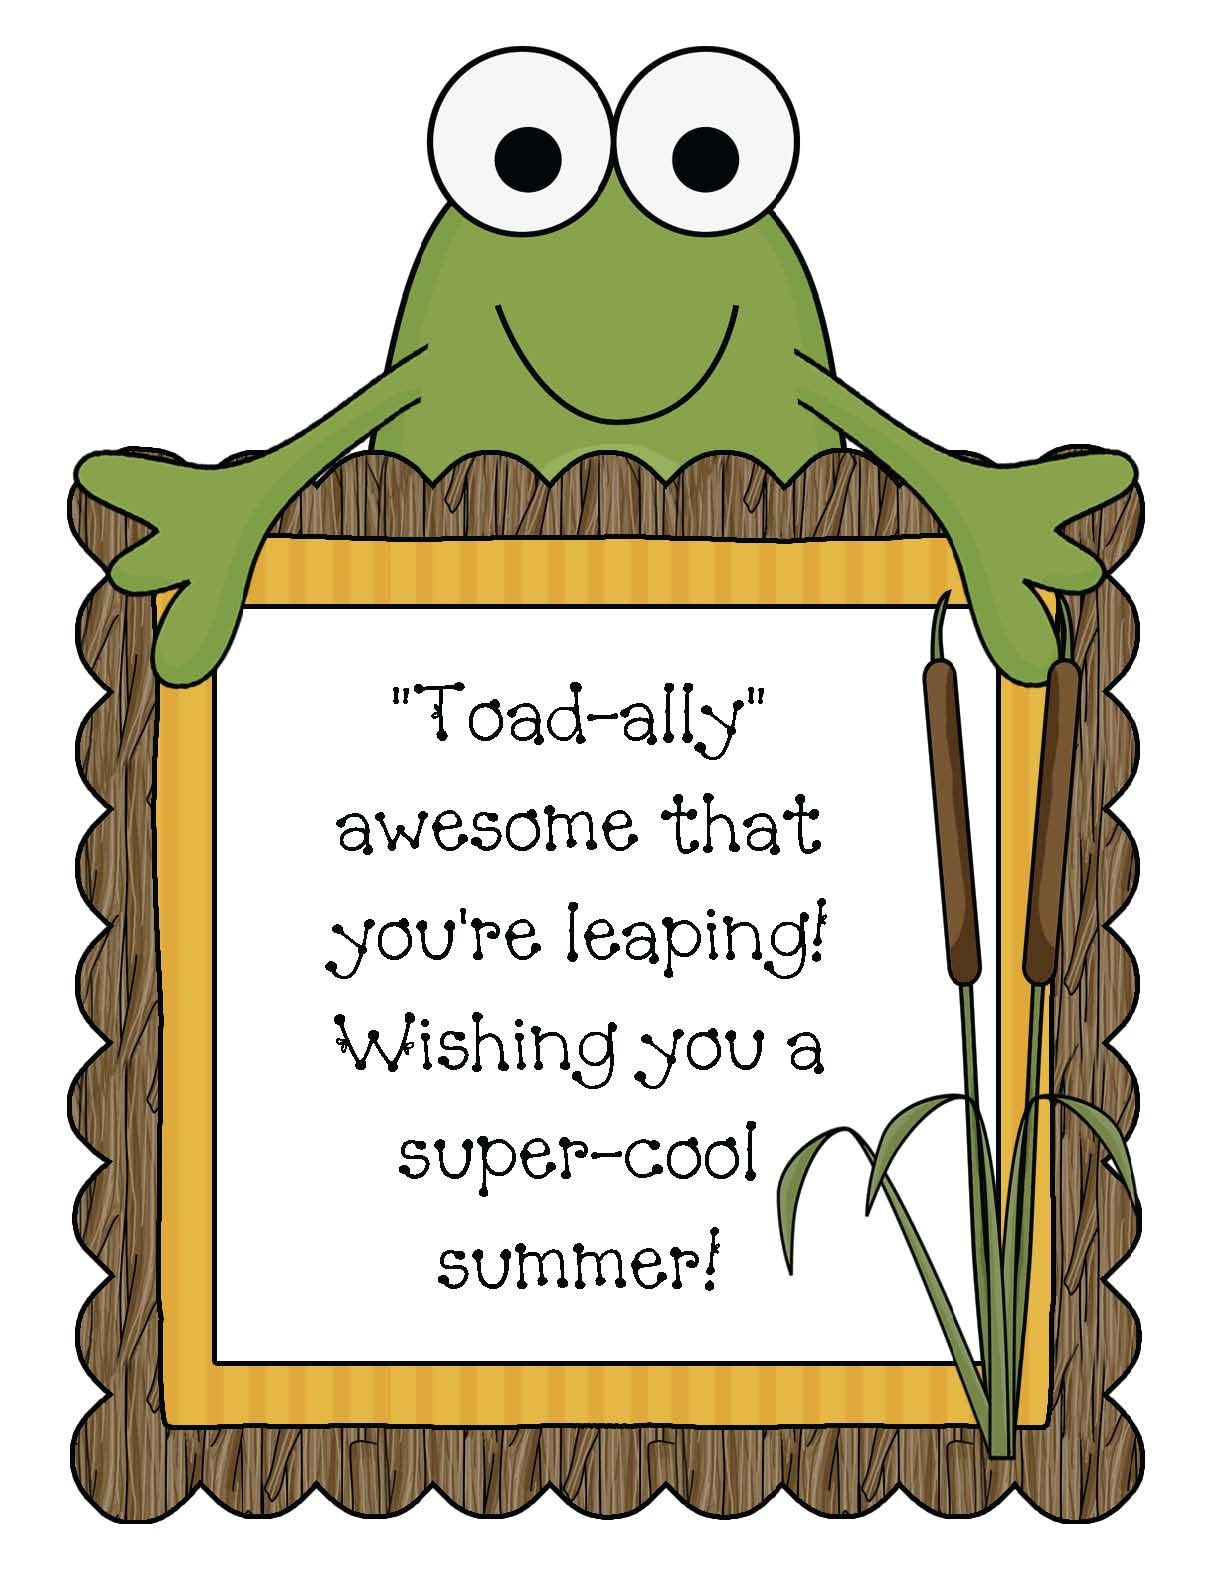 look whos leaping activities, frog crafts, frog writing prompts, back to school crafts, back to school treats, back to school ideas, back to school bulletin boards, back to school activities, back to school writing prompts, end of the year writing prompts, end of the year activities, end of they year memory books, end of the year bulletin boards, summer writing prompts, end of the year crafts, free school certificates, certificates, brag bracelets, slap bracelets, bookmarks, free bookmarks, coloring pages